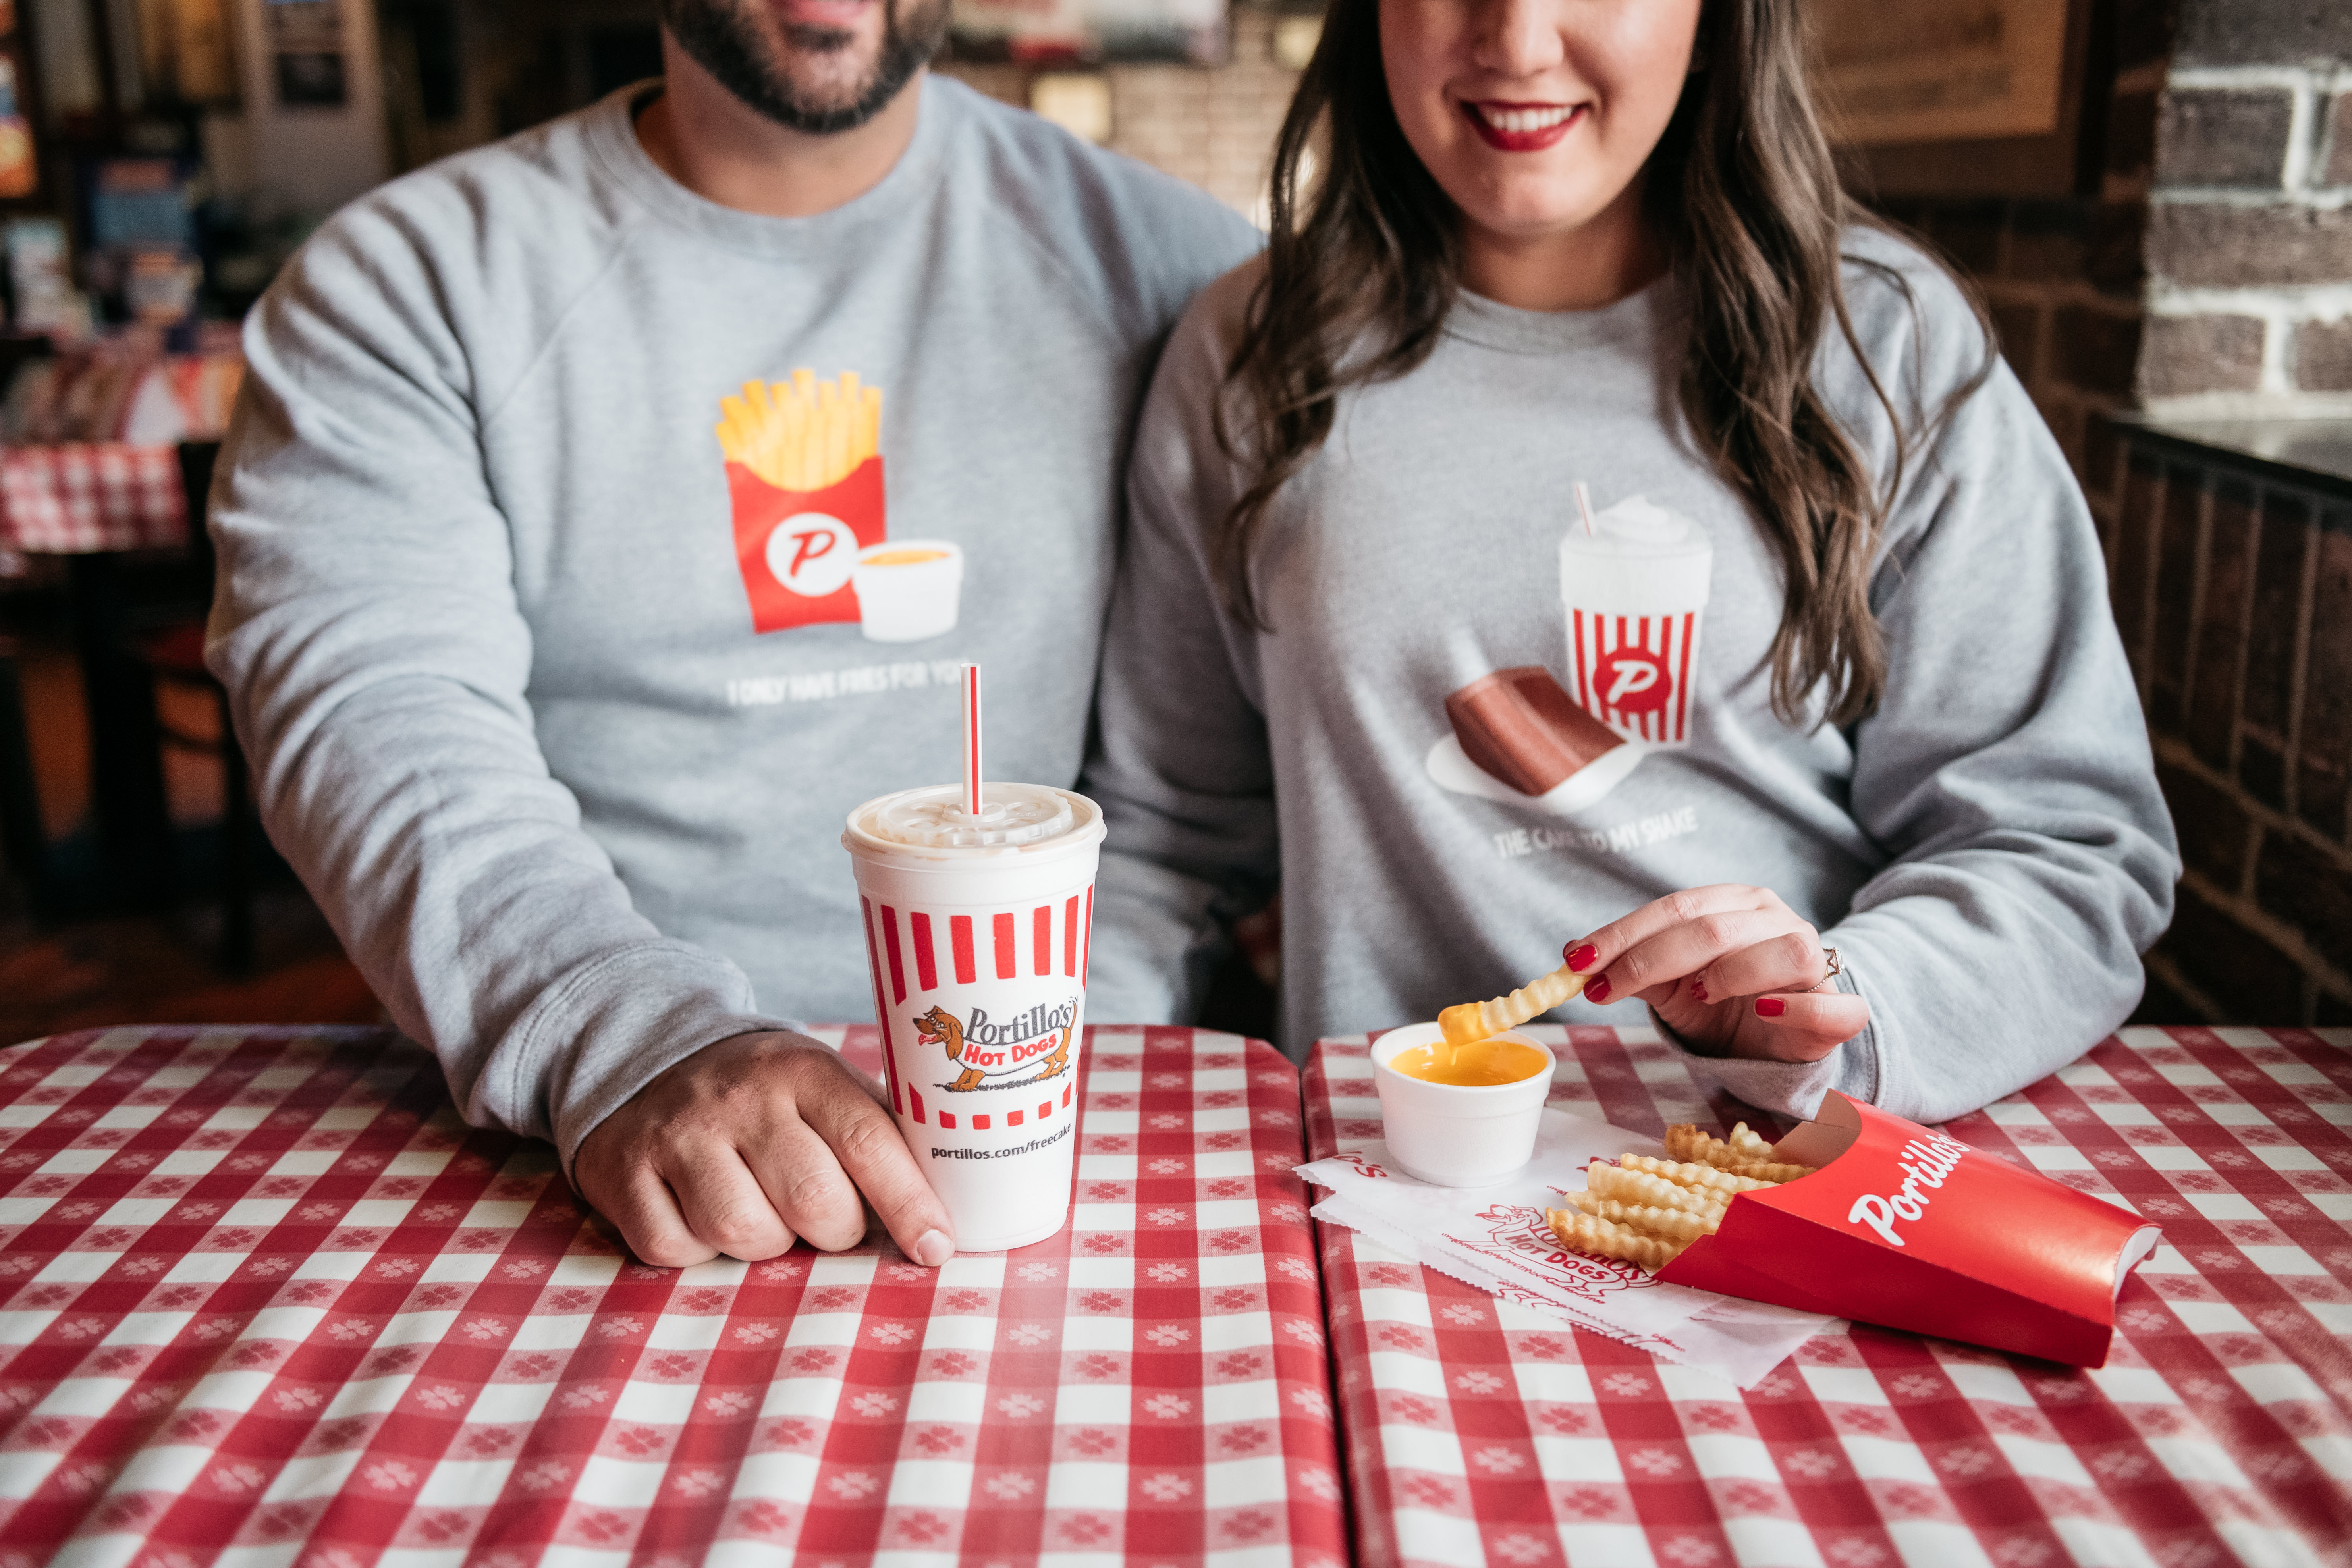 A white man and white woman sit next to each other at a table covered with a checkered cloth. They hold a container of fries and a soda cup.